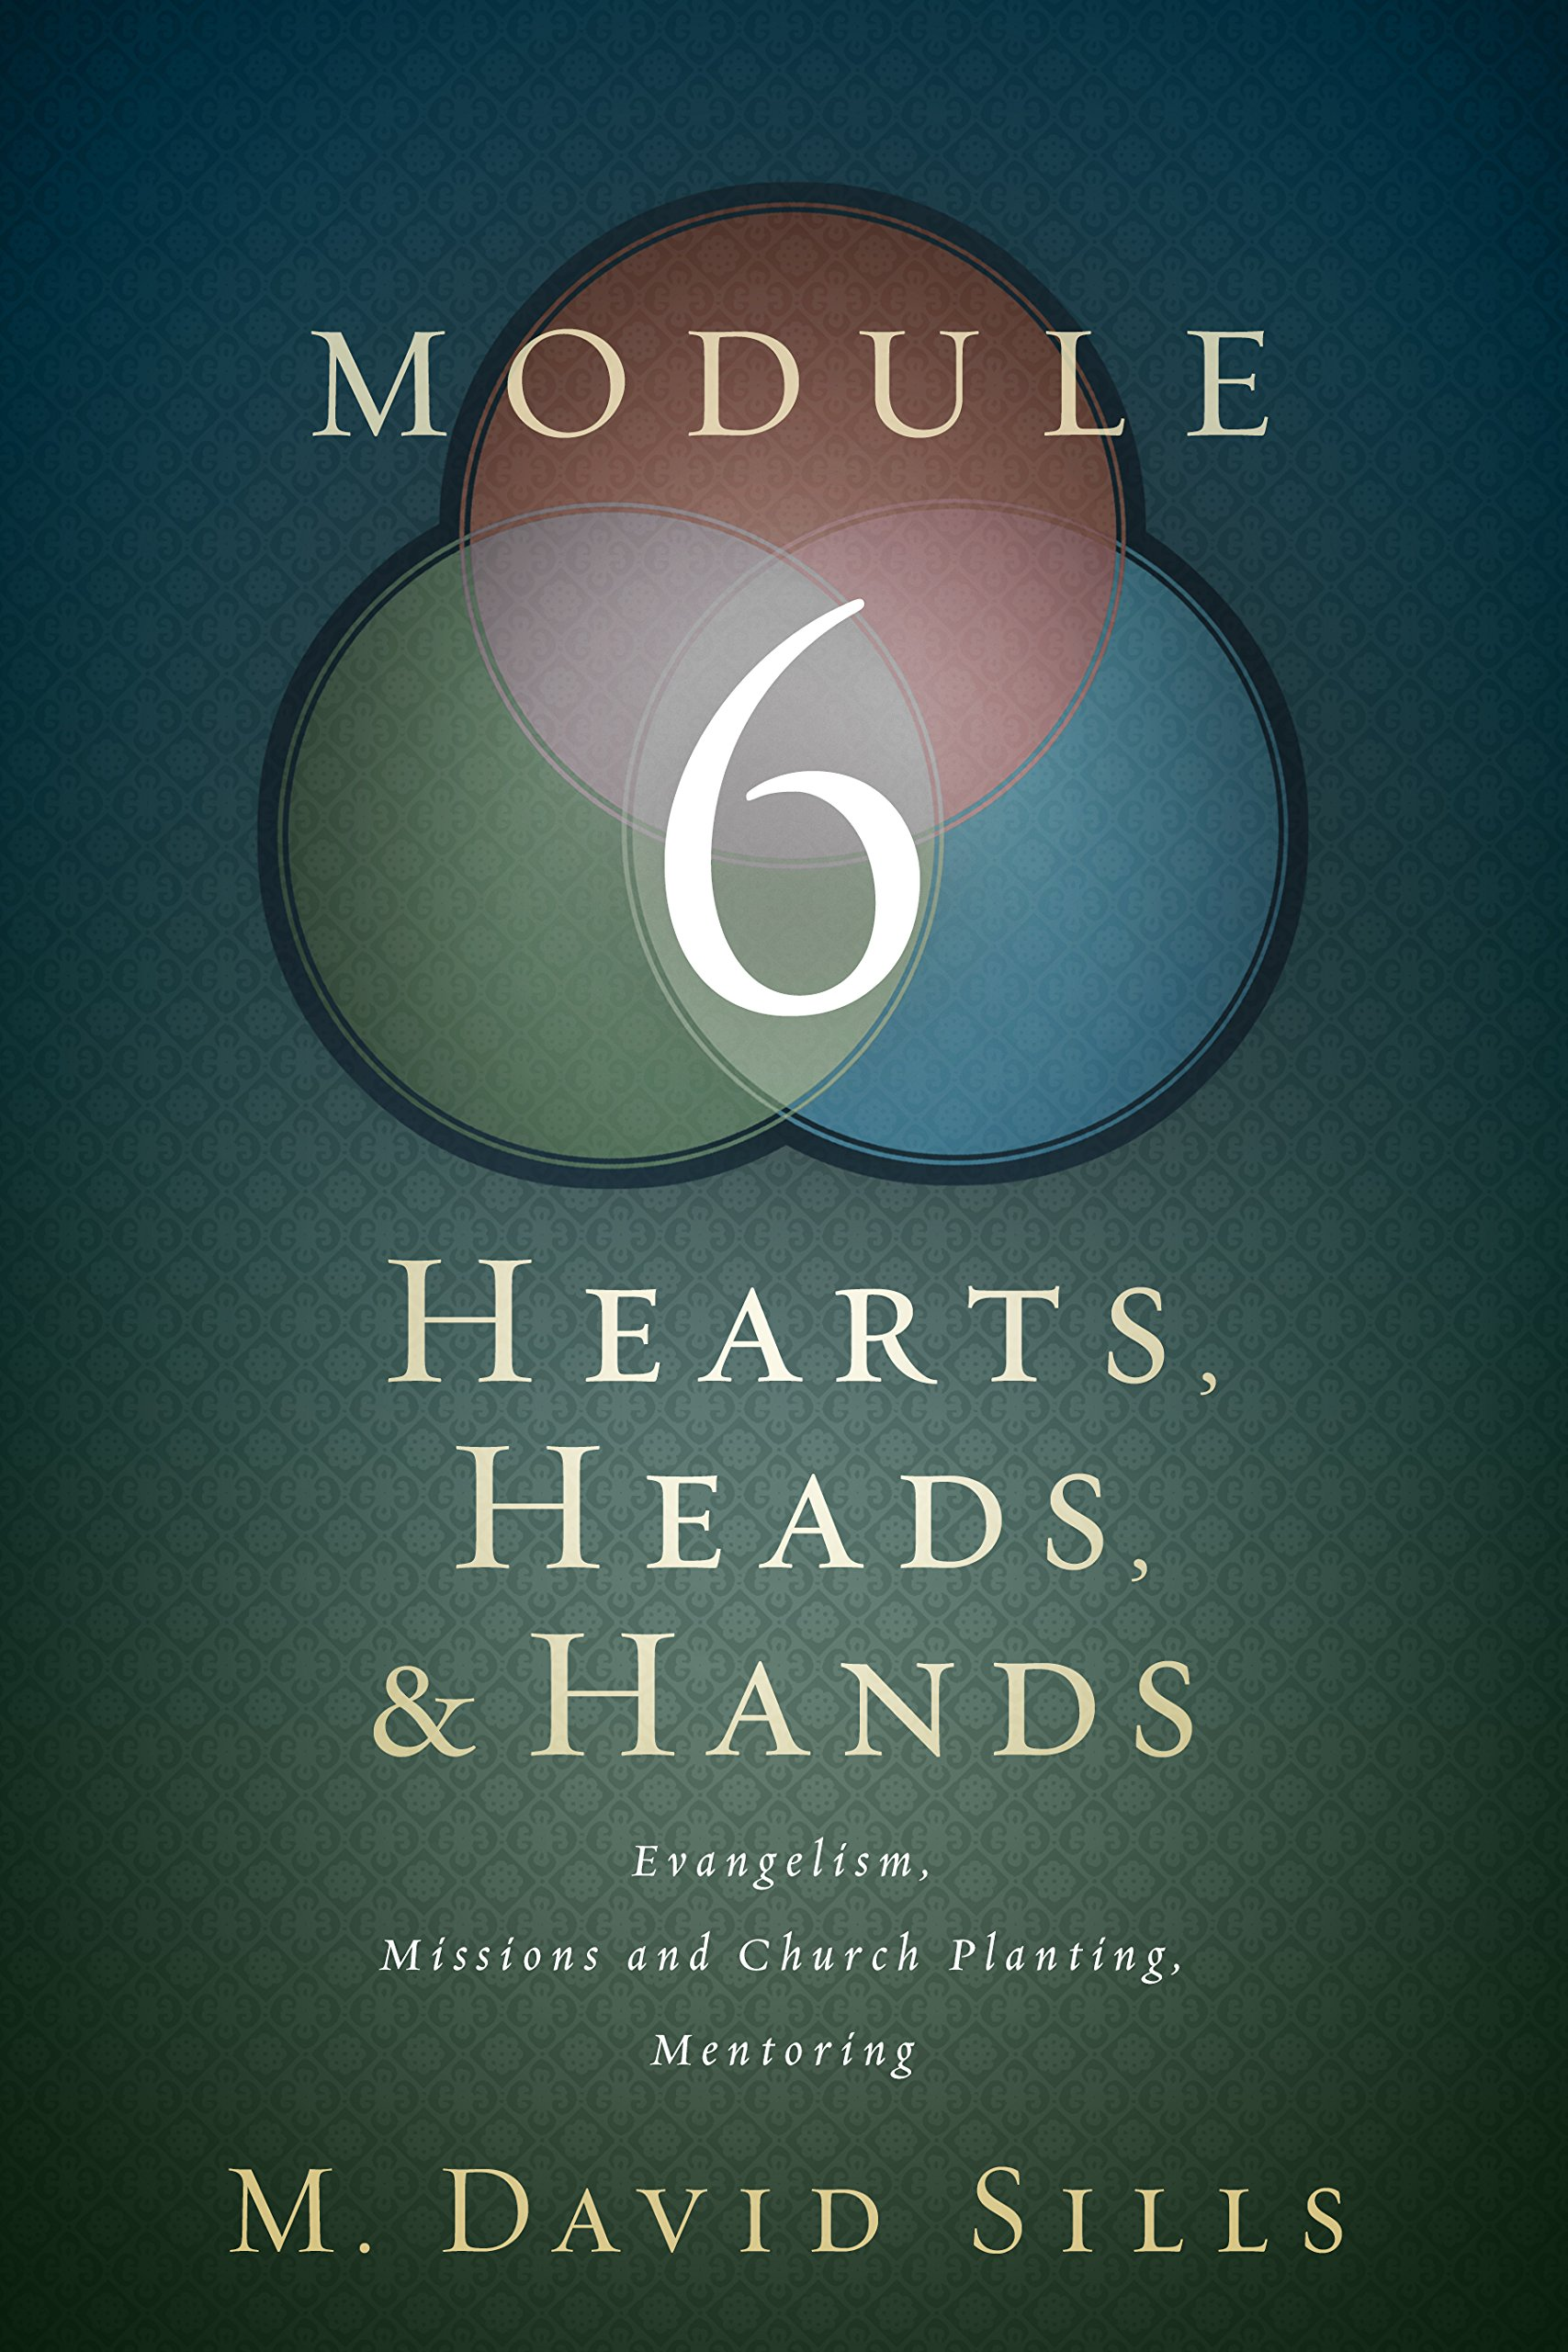 Hearts, Heads, and Hands- Module 6: Evangelism, Missions and Church Planting, and Mentoring ebook